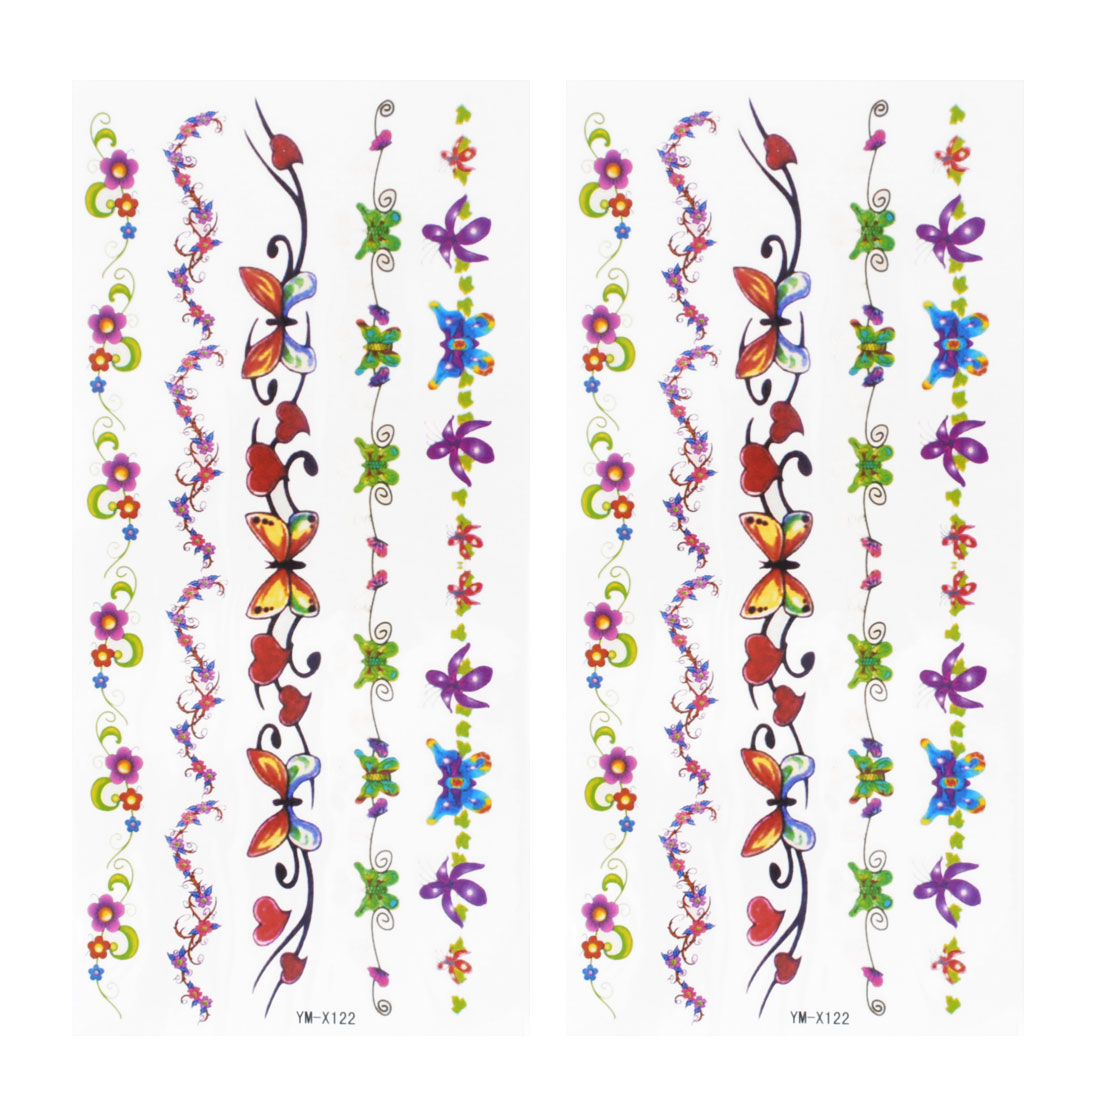 Colorful Butterfly Floral Print Temporary Tattoo Transfer Sticker 2 Pcs